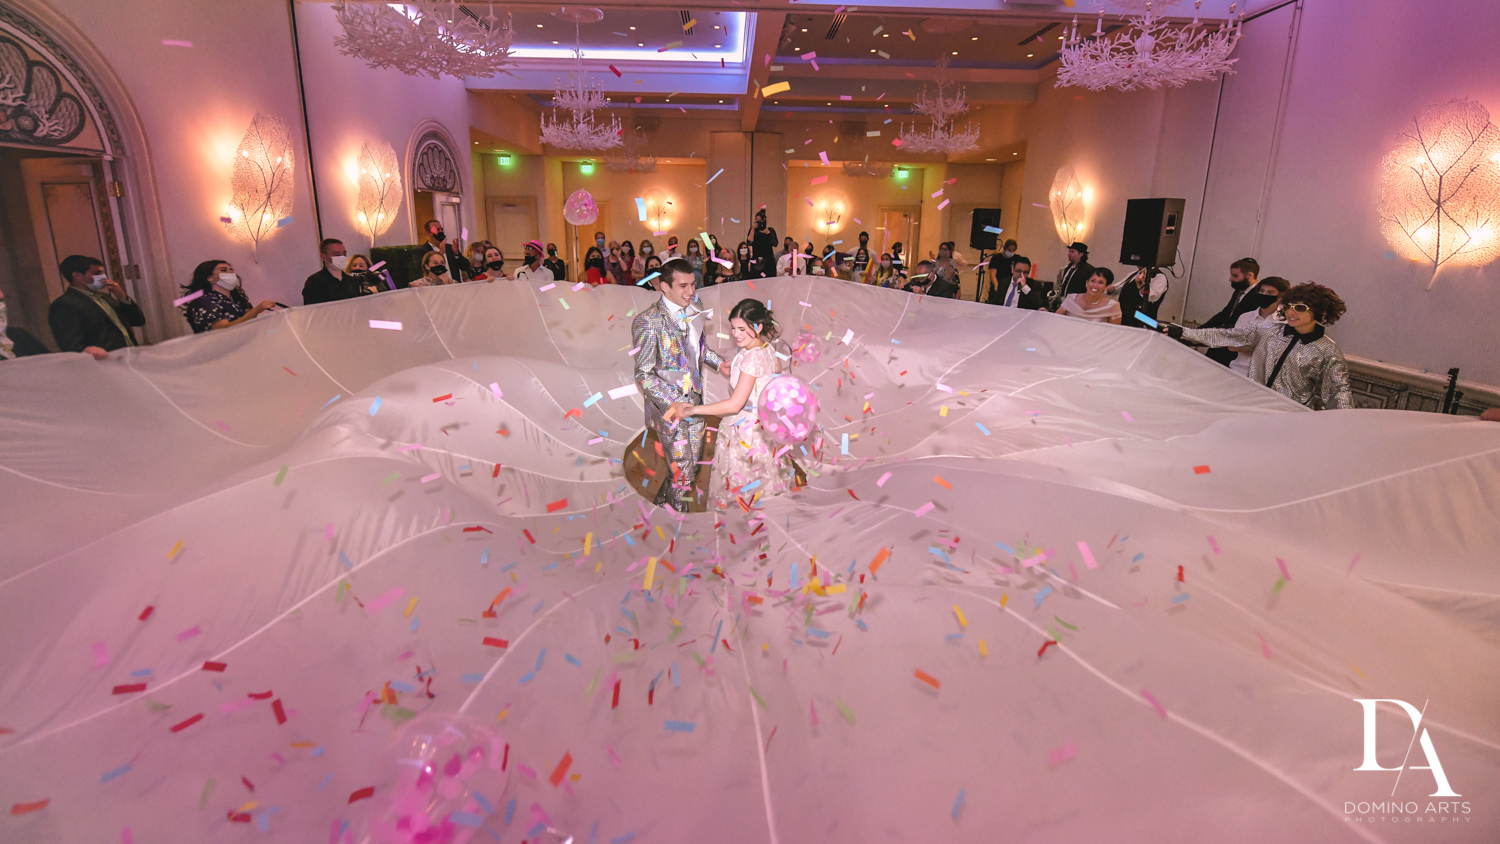 florida wedding shtick rental fun at Luxury Summer Wedding at The Colony Hotel Palm Beach by Domino Arts Photography